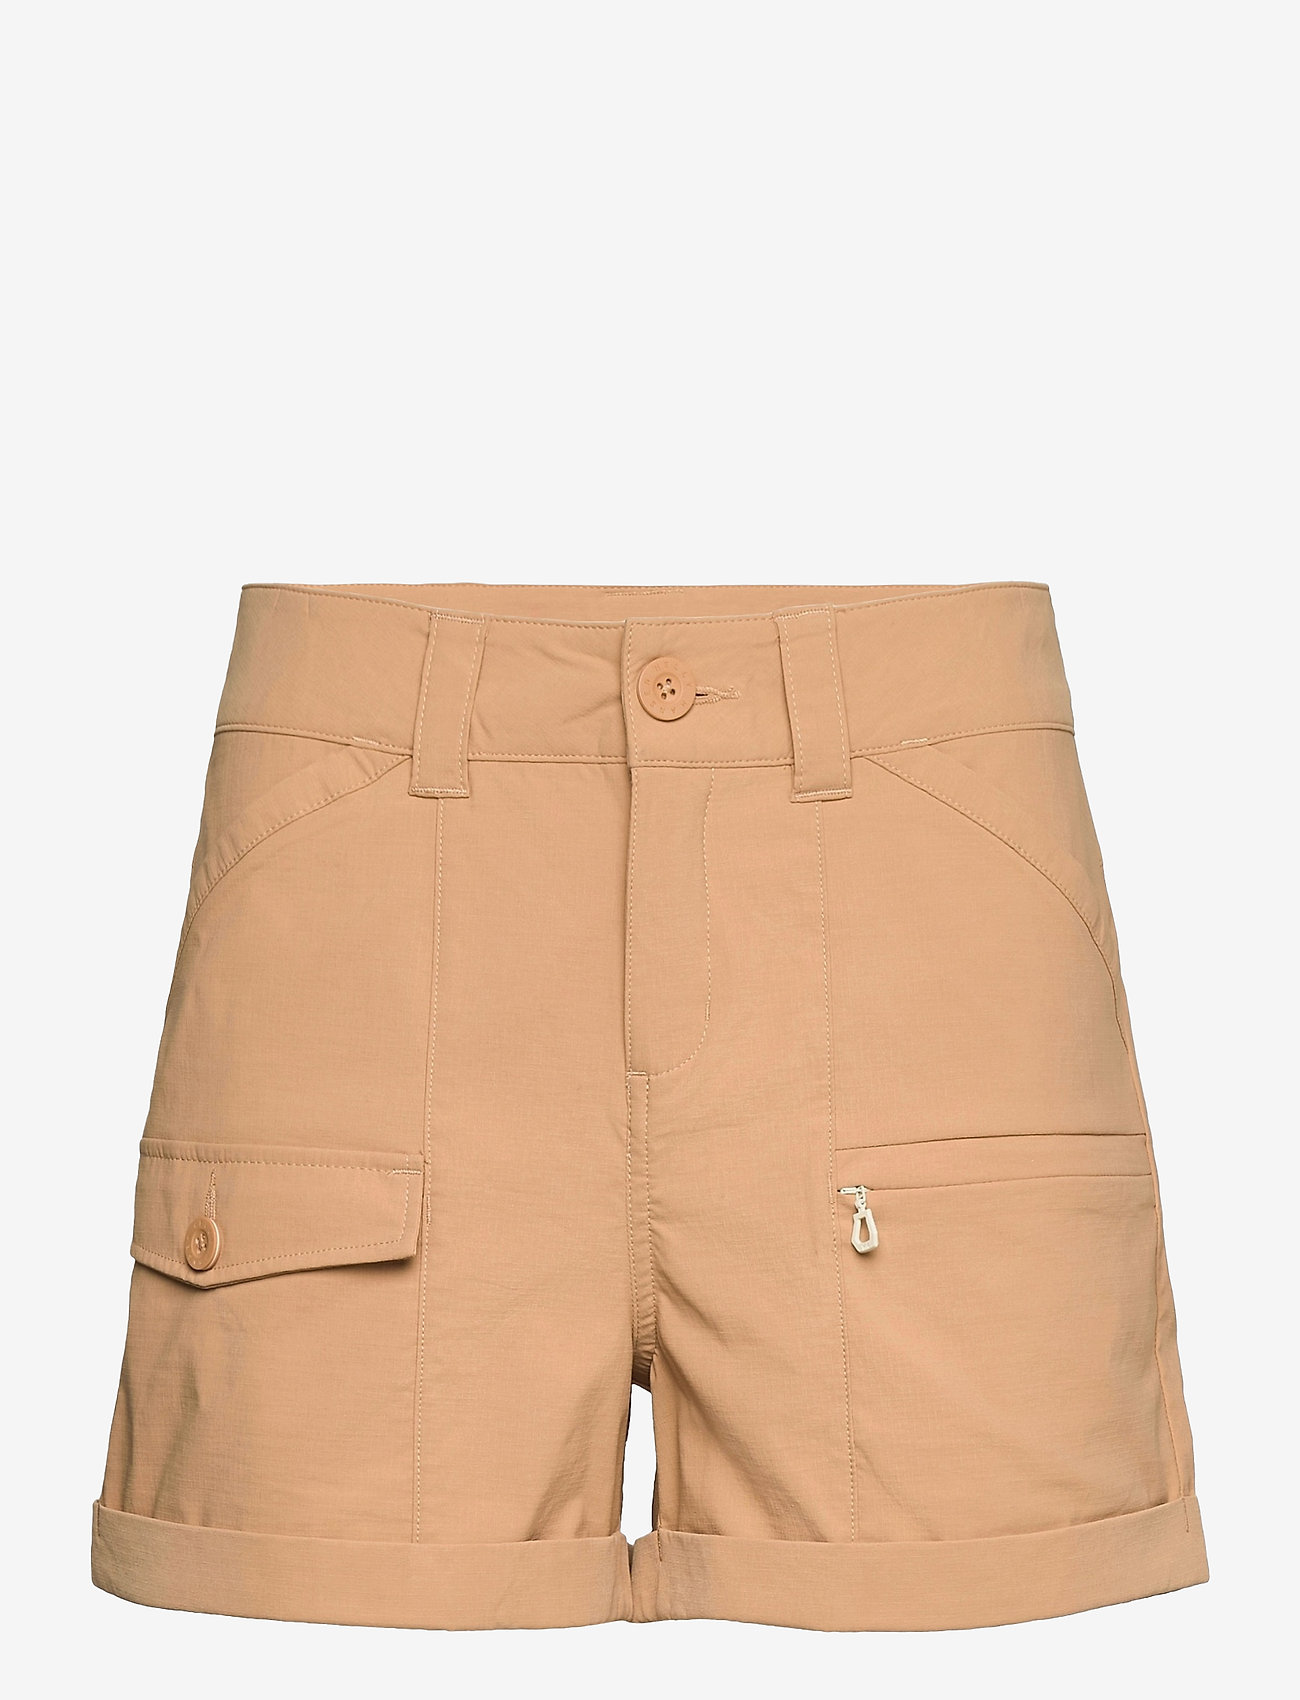 Helly Hansen - W MARIDALEN SHORTS - wandel korte broek - iced coffee - 1